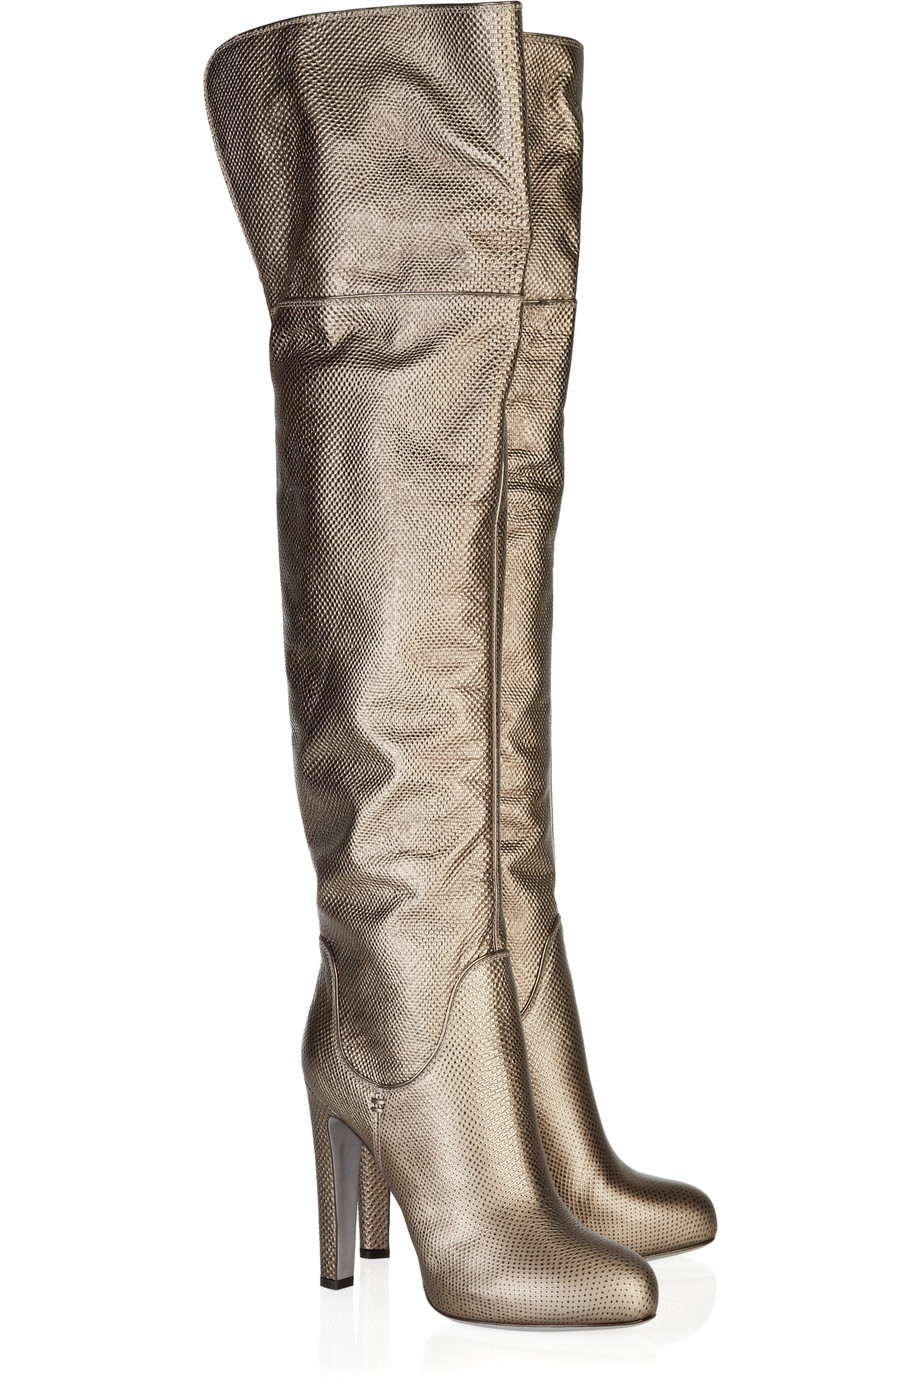 Sergio rossi Metallic Leather Over-the-knee Boots in Metallic | Lyst